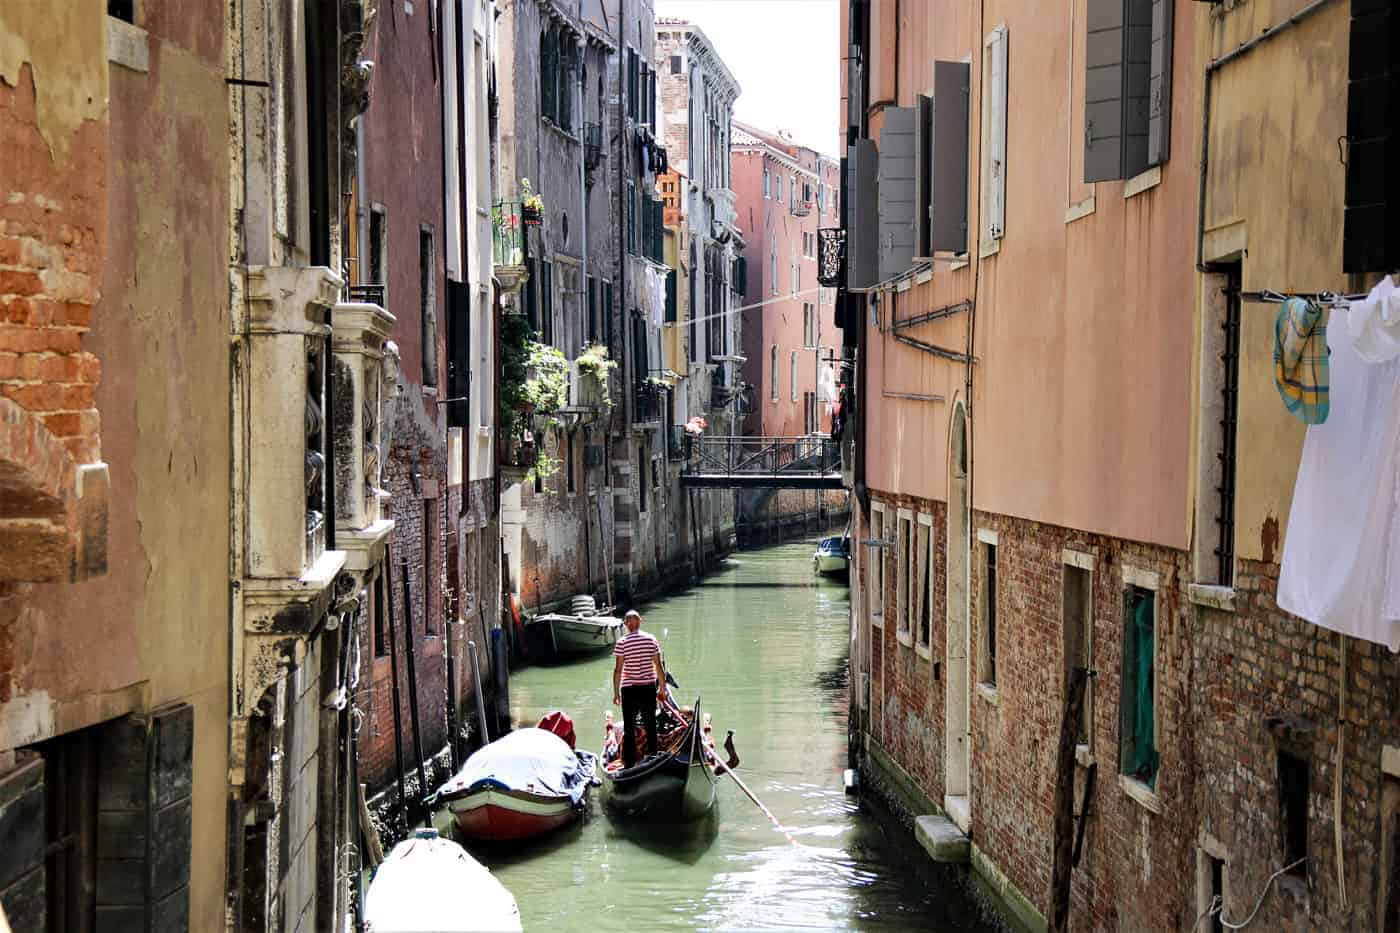 Canals of Venice Italy belong on every Italy bucket list